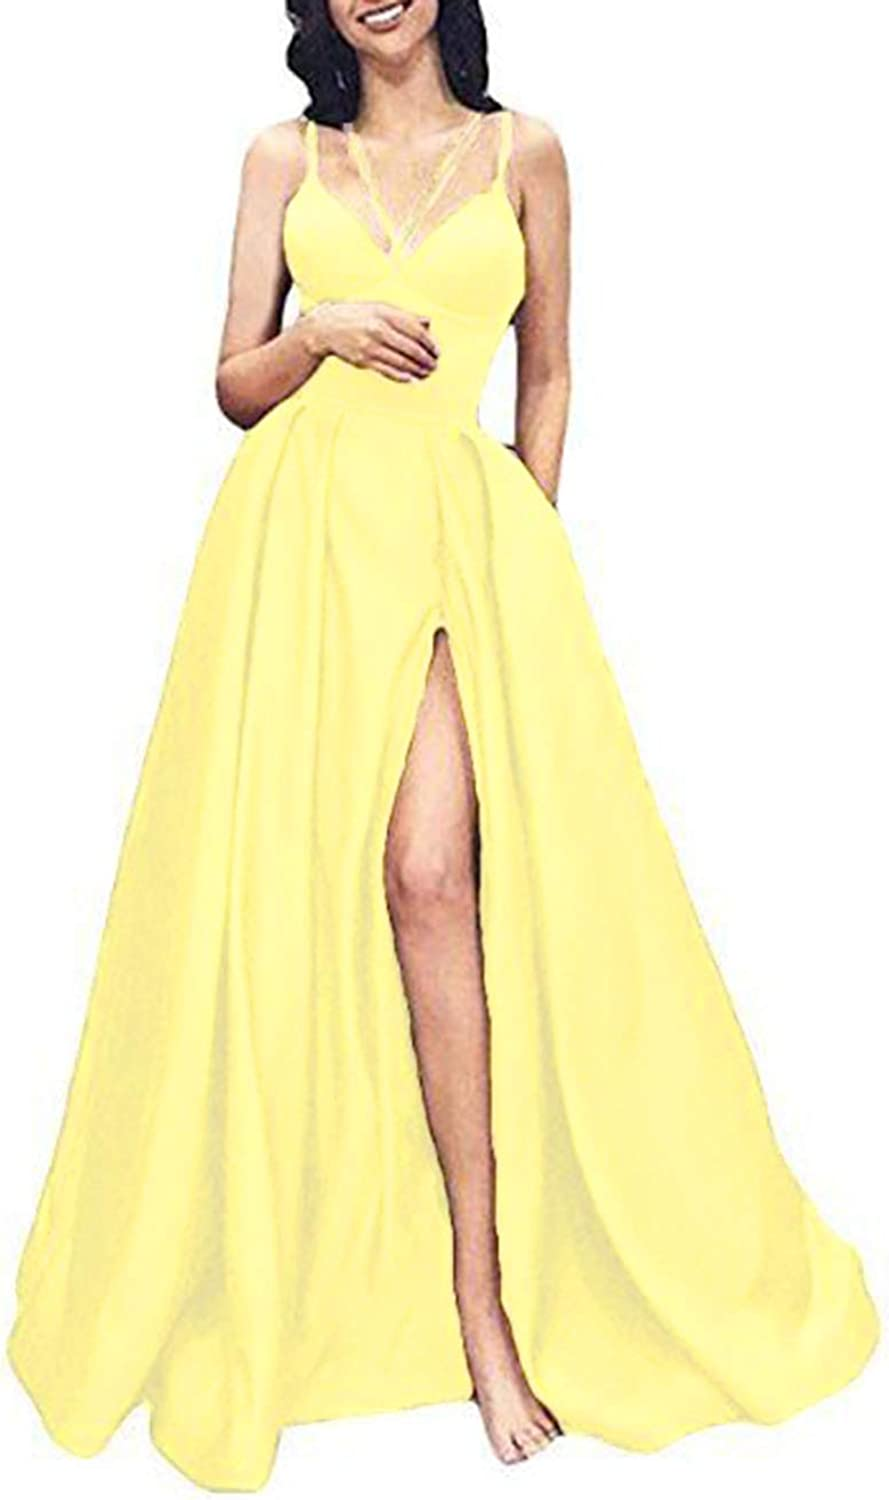 Alilith.Z Sexy Spaghetti Strap Satin Prom Dresses 2019 Long Slit Evening Dresses Formal Party Gowns for Women with Pockets